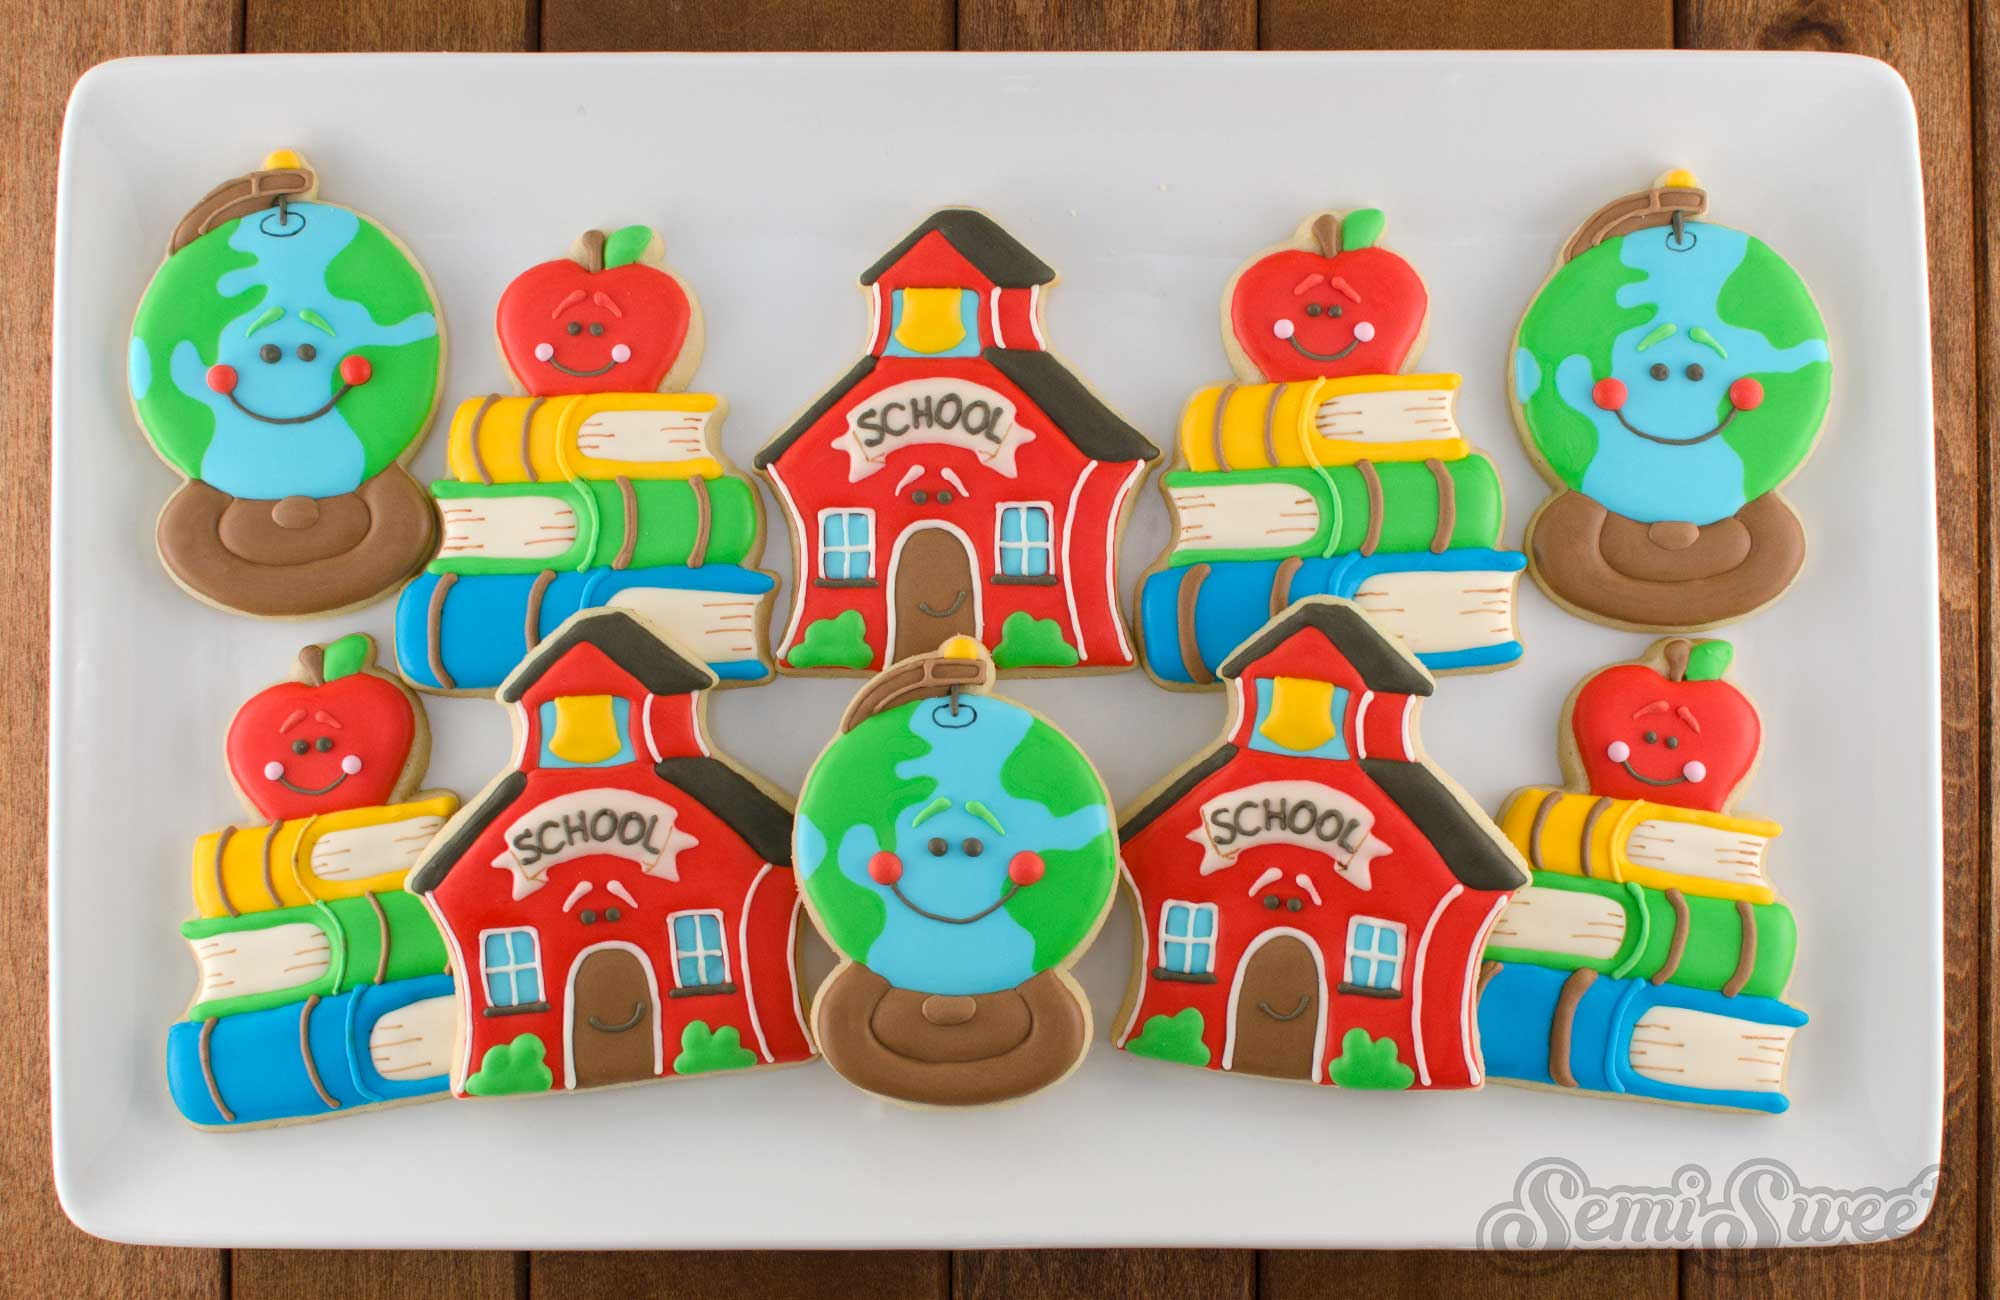 schoolhouse cookie platter by Semi Sweet Designs